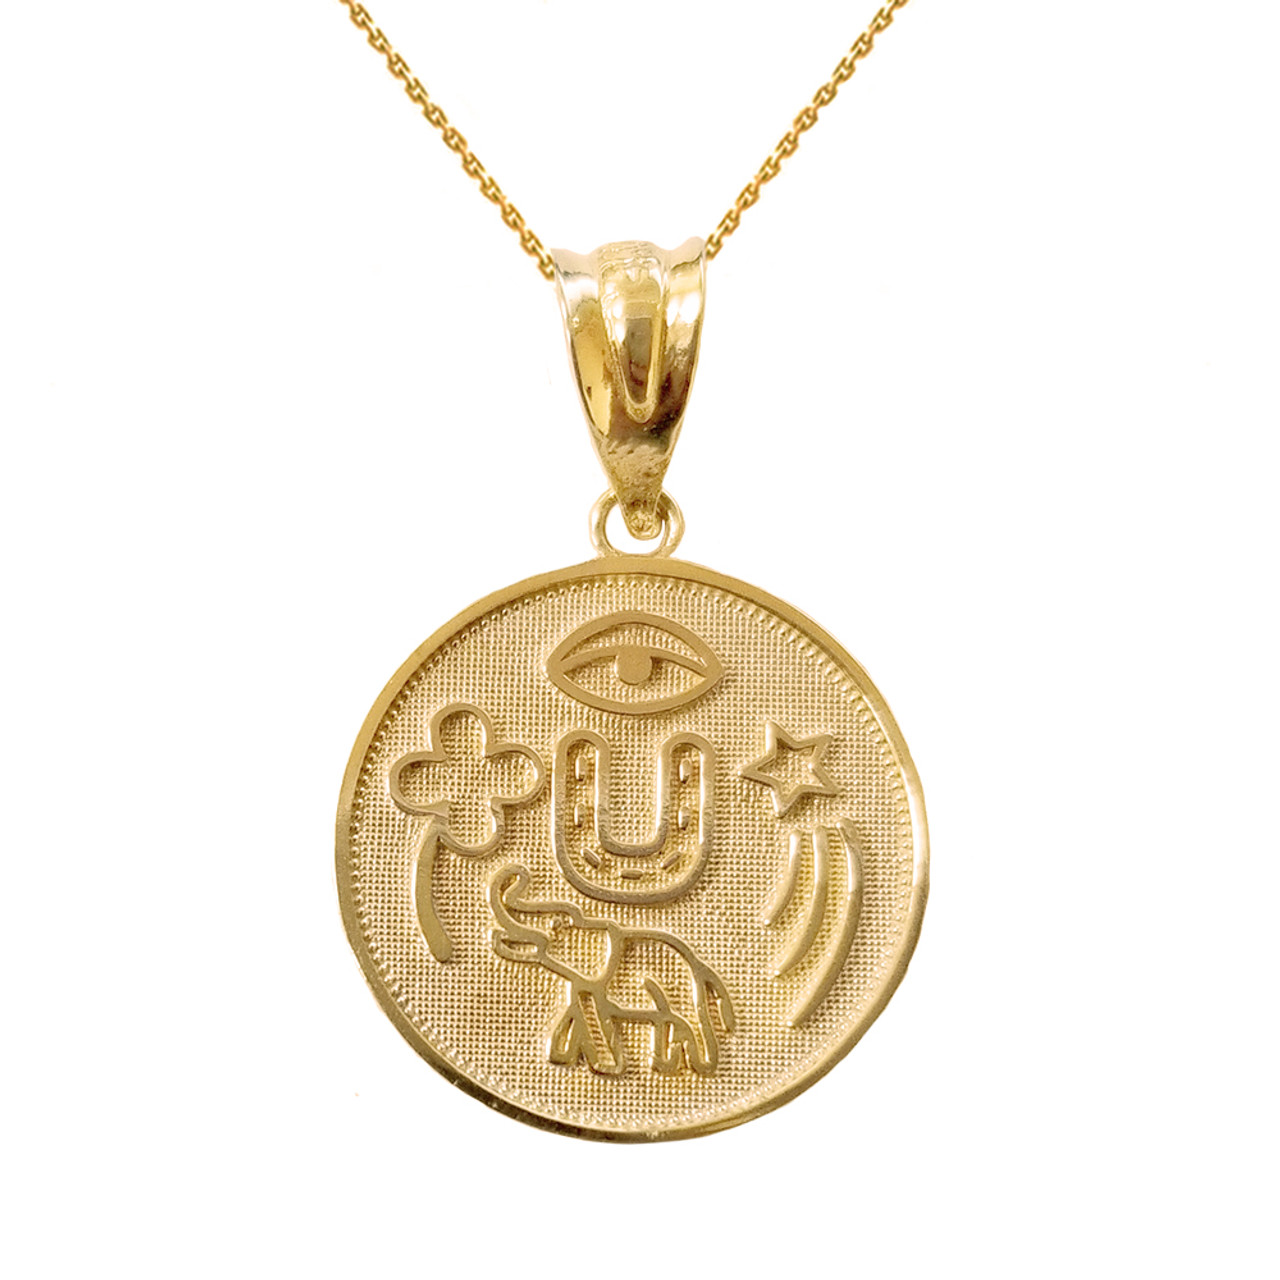 Solid yellow gold lucky charms amulet good luck disc medallion solid yellow gold lucky charms amulet good luck disc medallion pendant necklace aloadofball Image collections